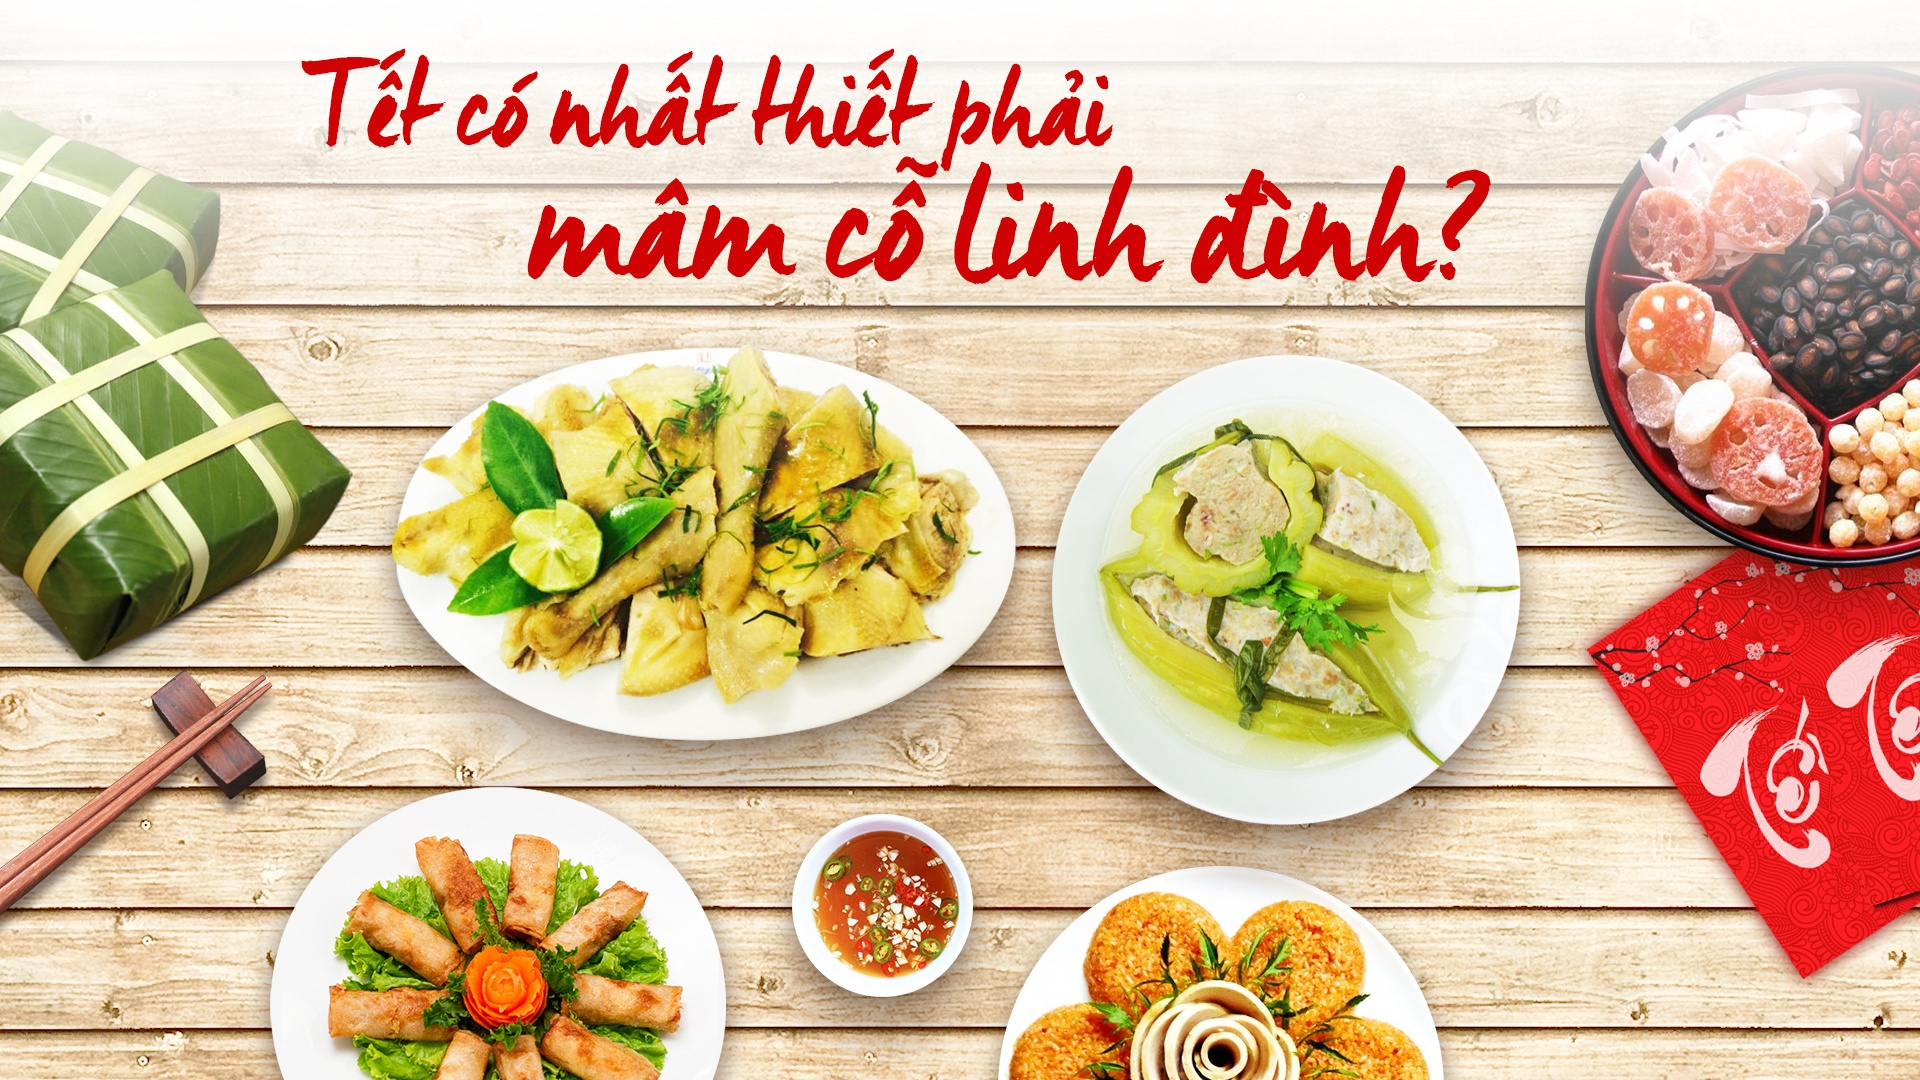 Tet co nhat thiet phai mam co linh dinh? hinh anh 2